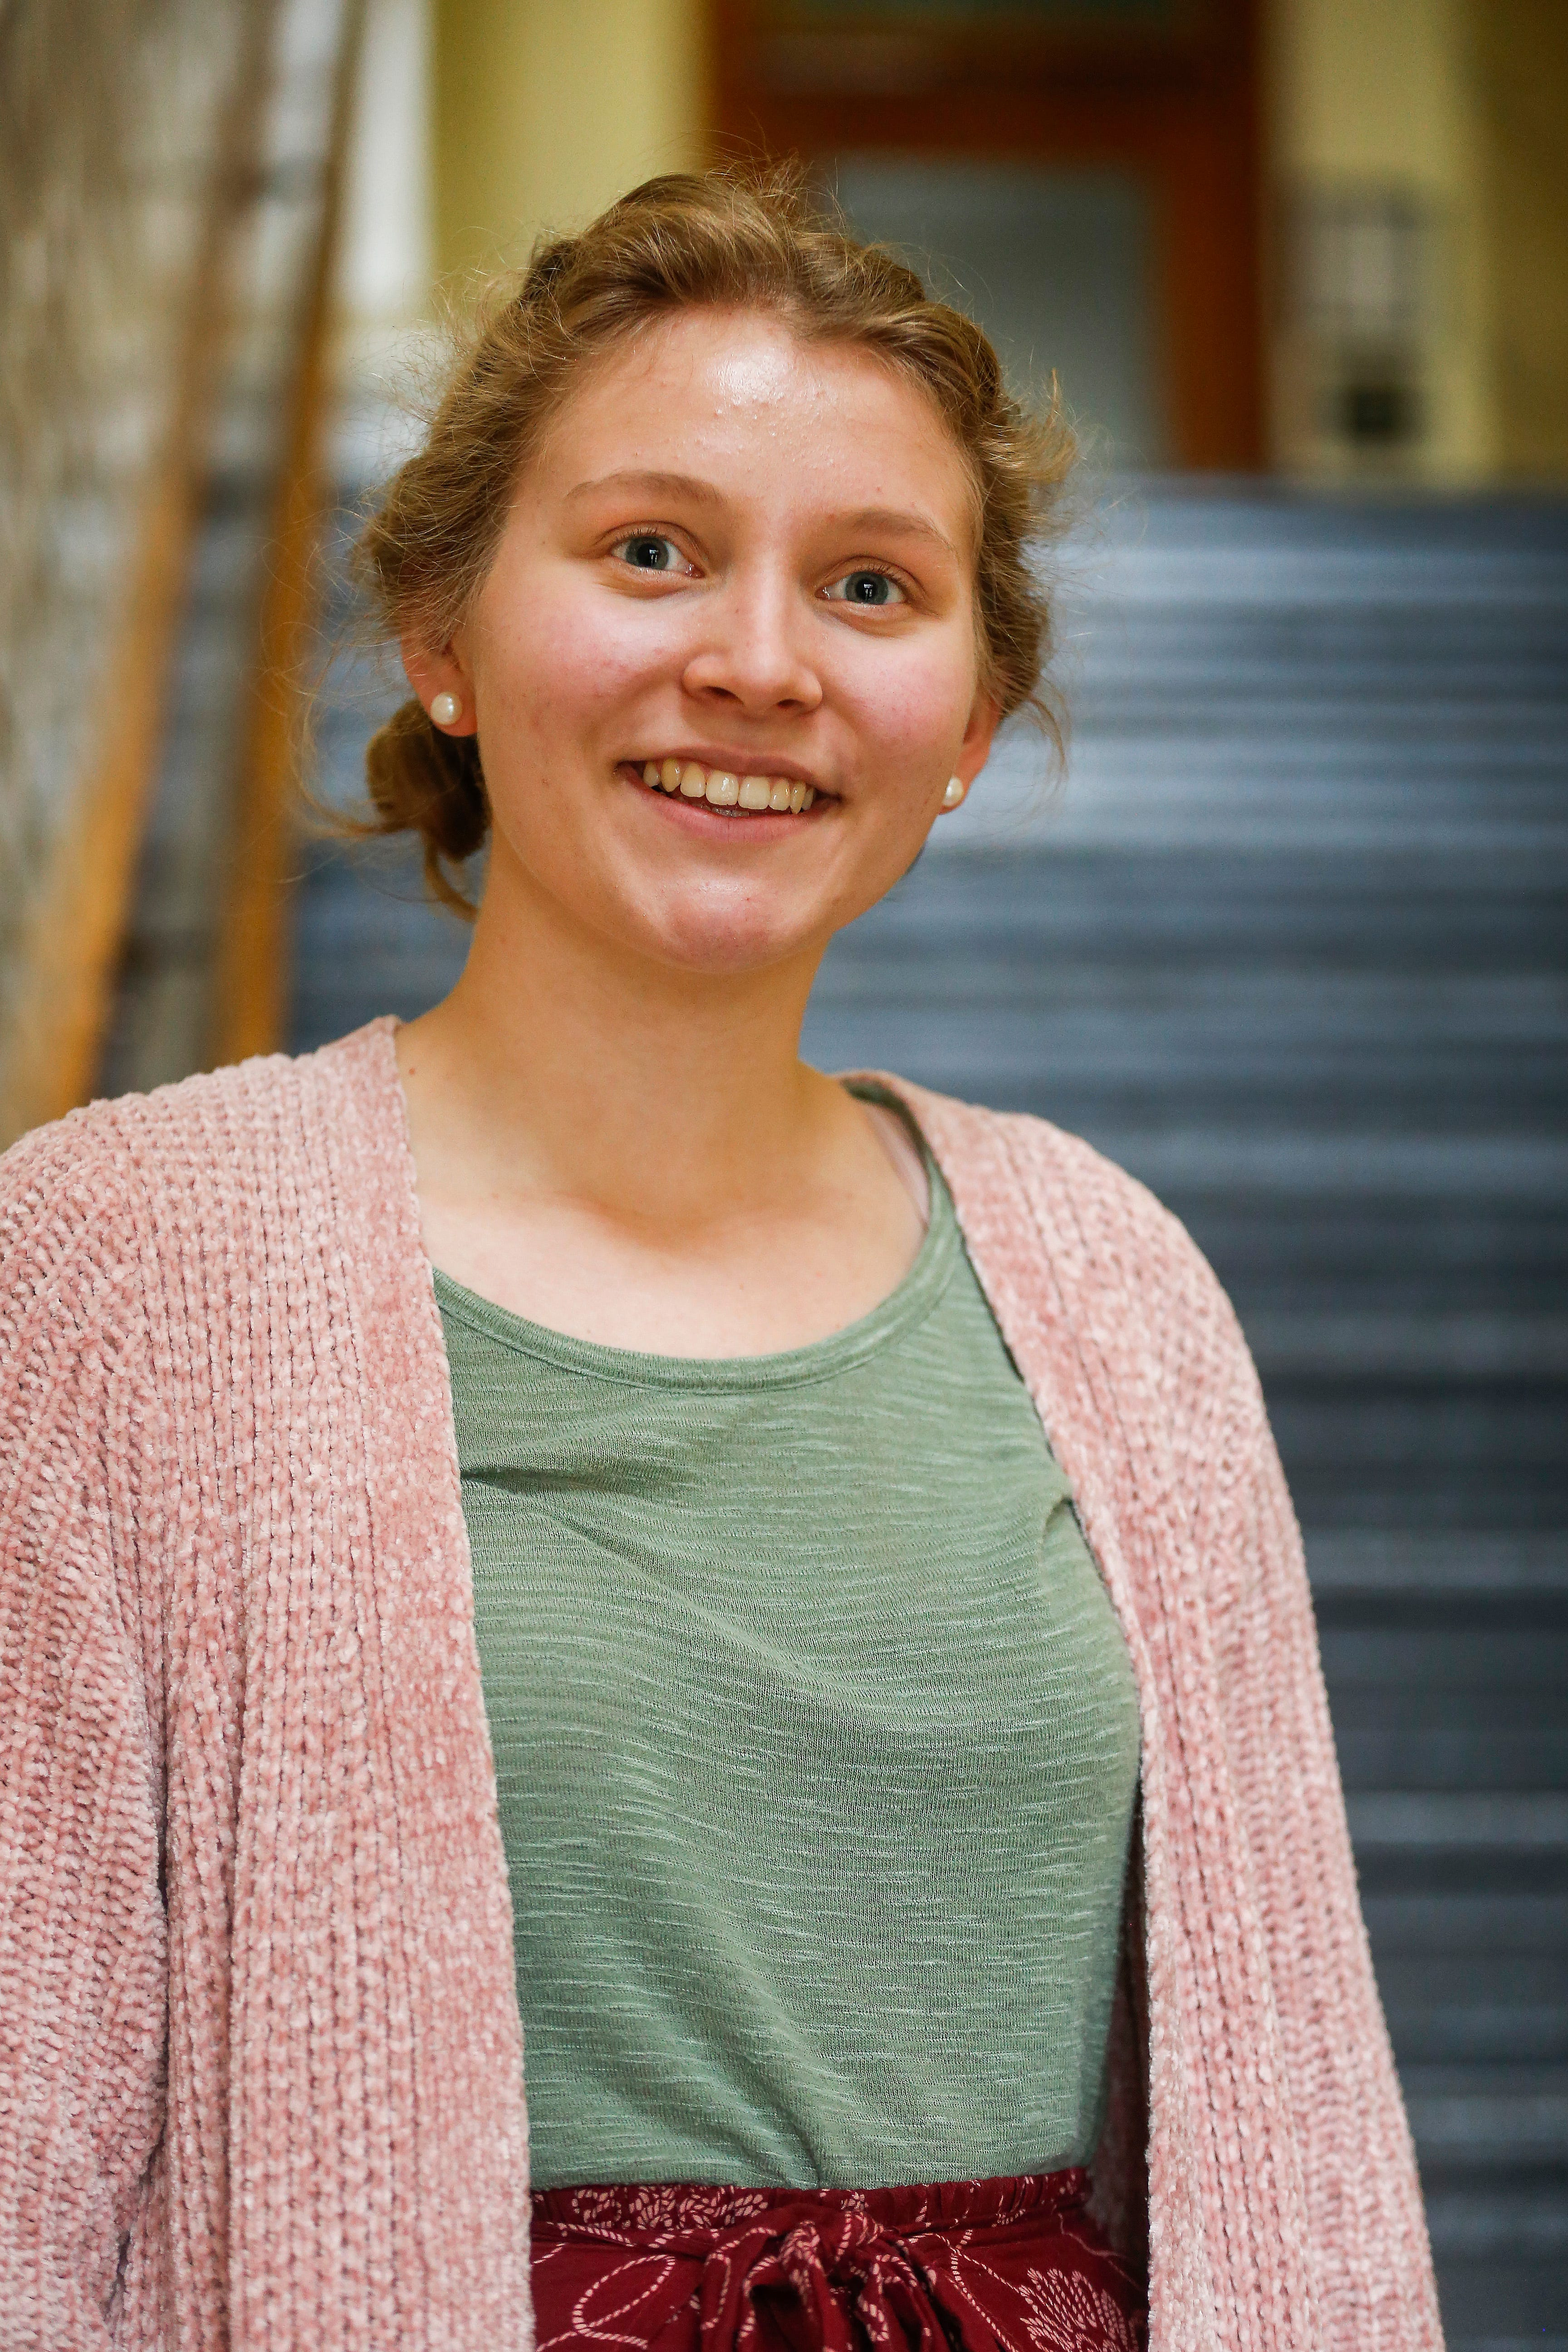 Lauren Raatz, 17, a junior at Central High School, scored a perfect 36 on the ACT.